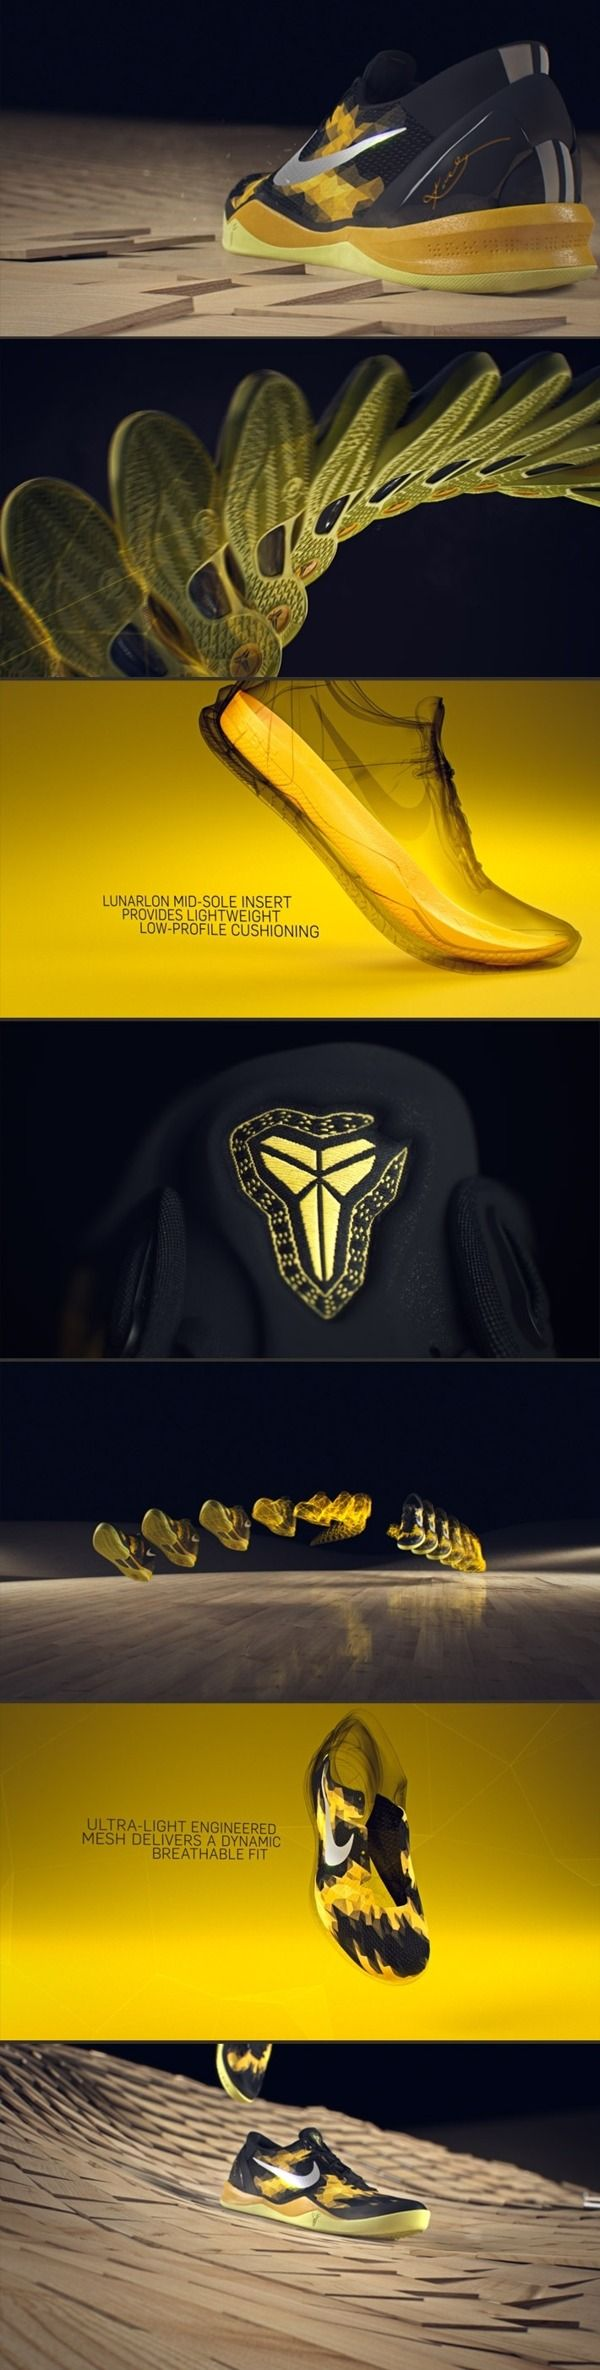 Nike Kobe 8 System by simon holmedal, via Behance